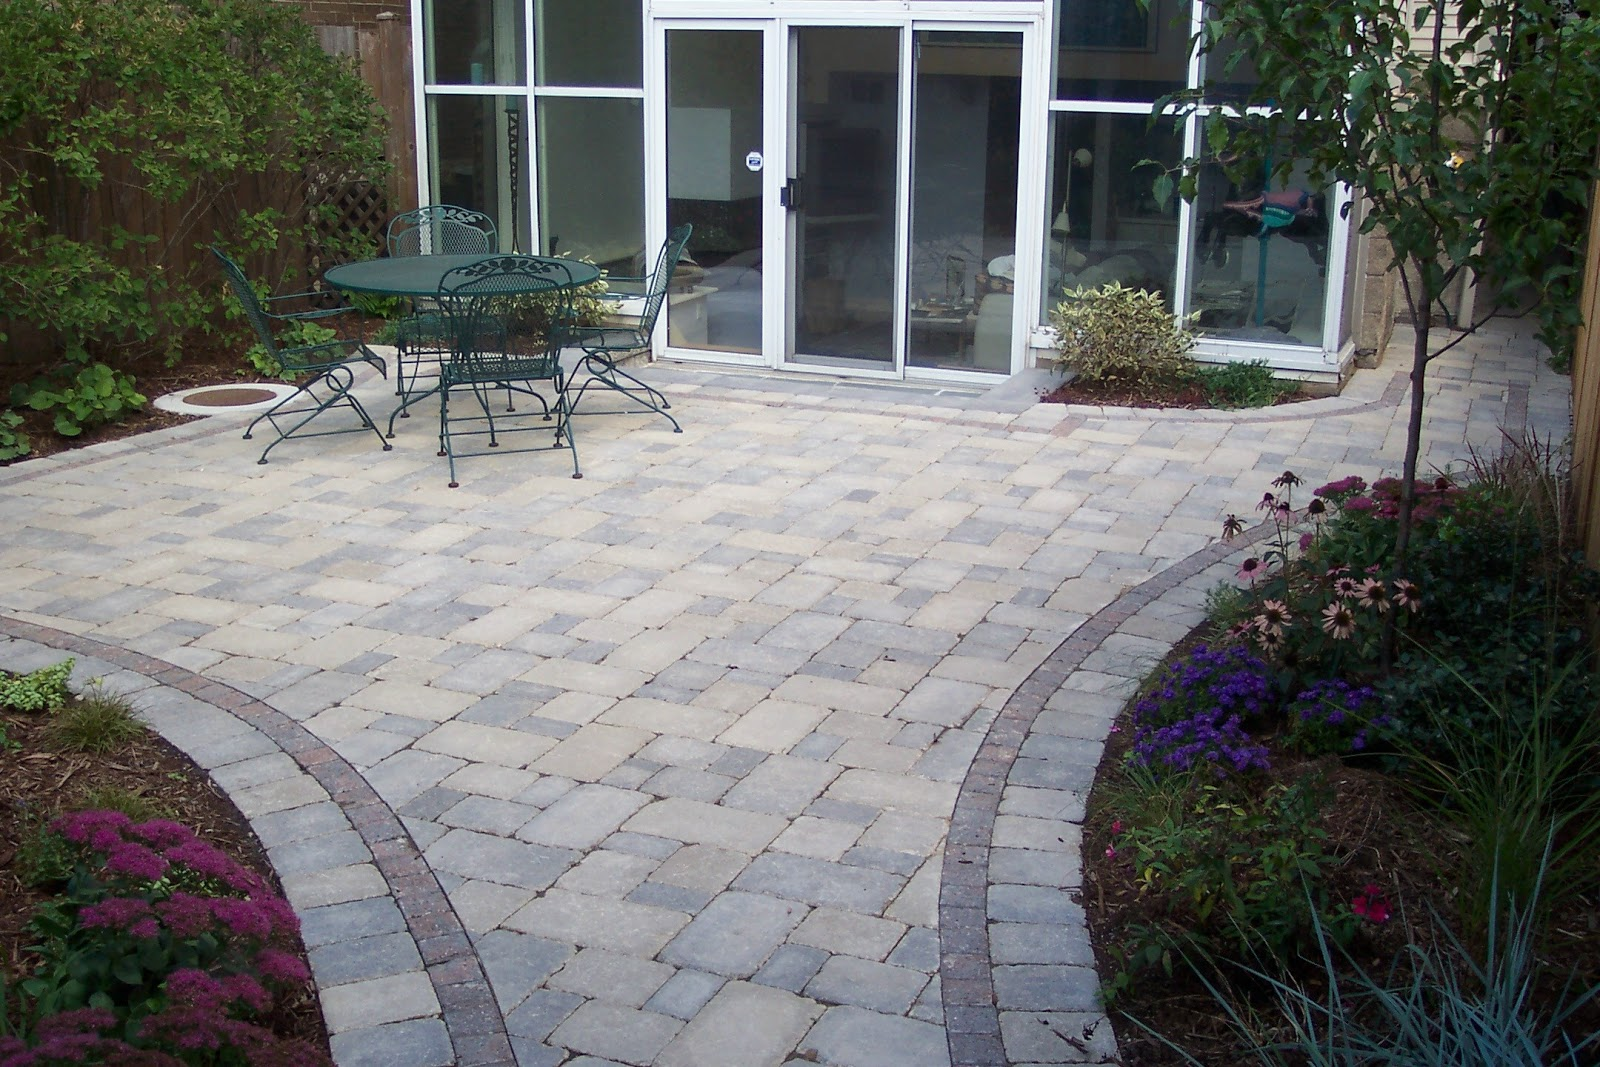 stone patio ideas stone patio pictures houselogic backyard ideas ... - Brick Stone Patio Designs